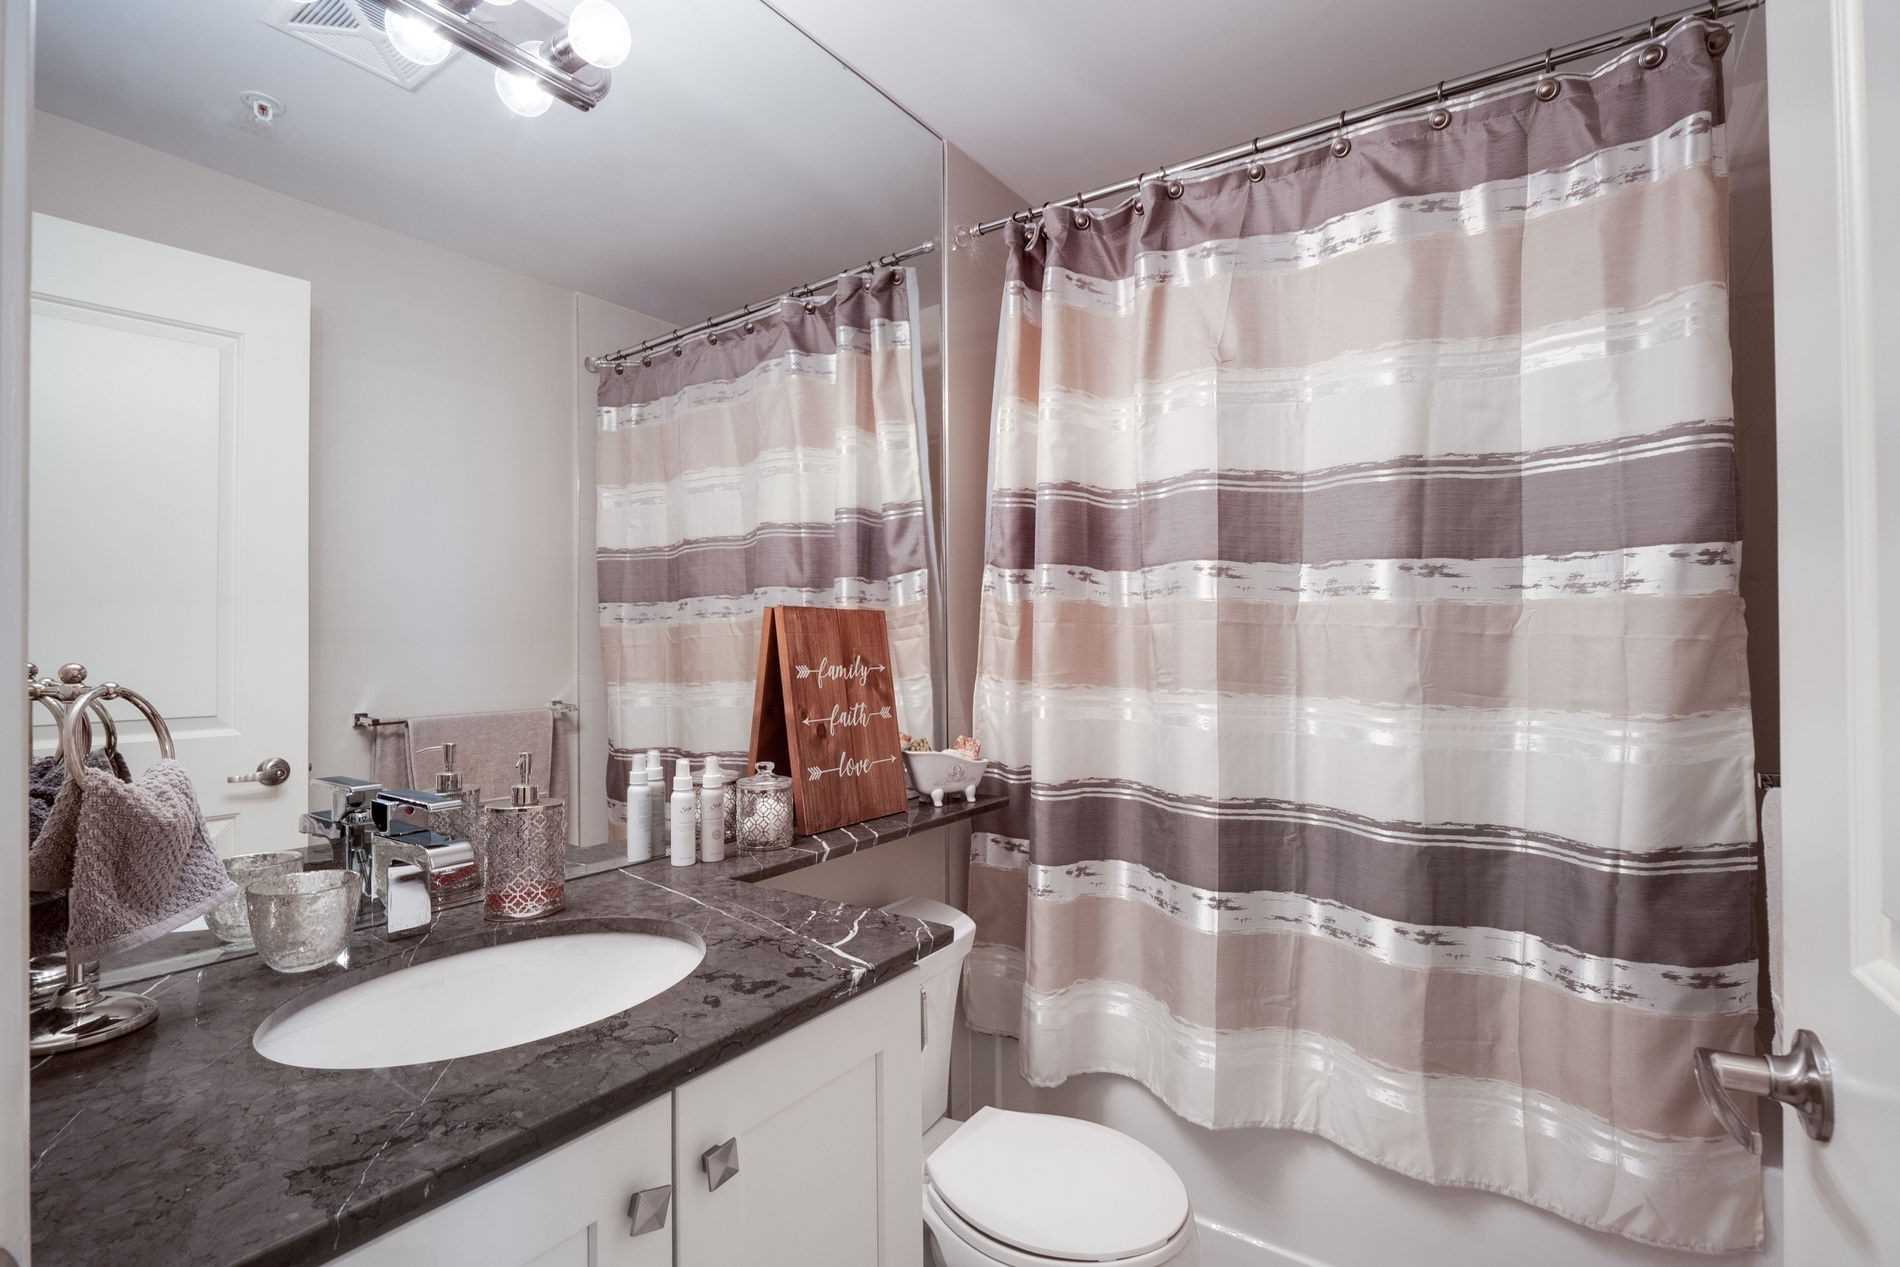 Image 38 of 40 showing inside of 2 Bedroom Condo Apt Apartment for Sale at 9255 Jane St Unit# 1702, Vaughan L6A0K1